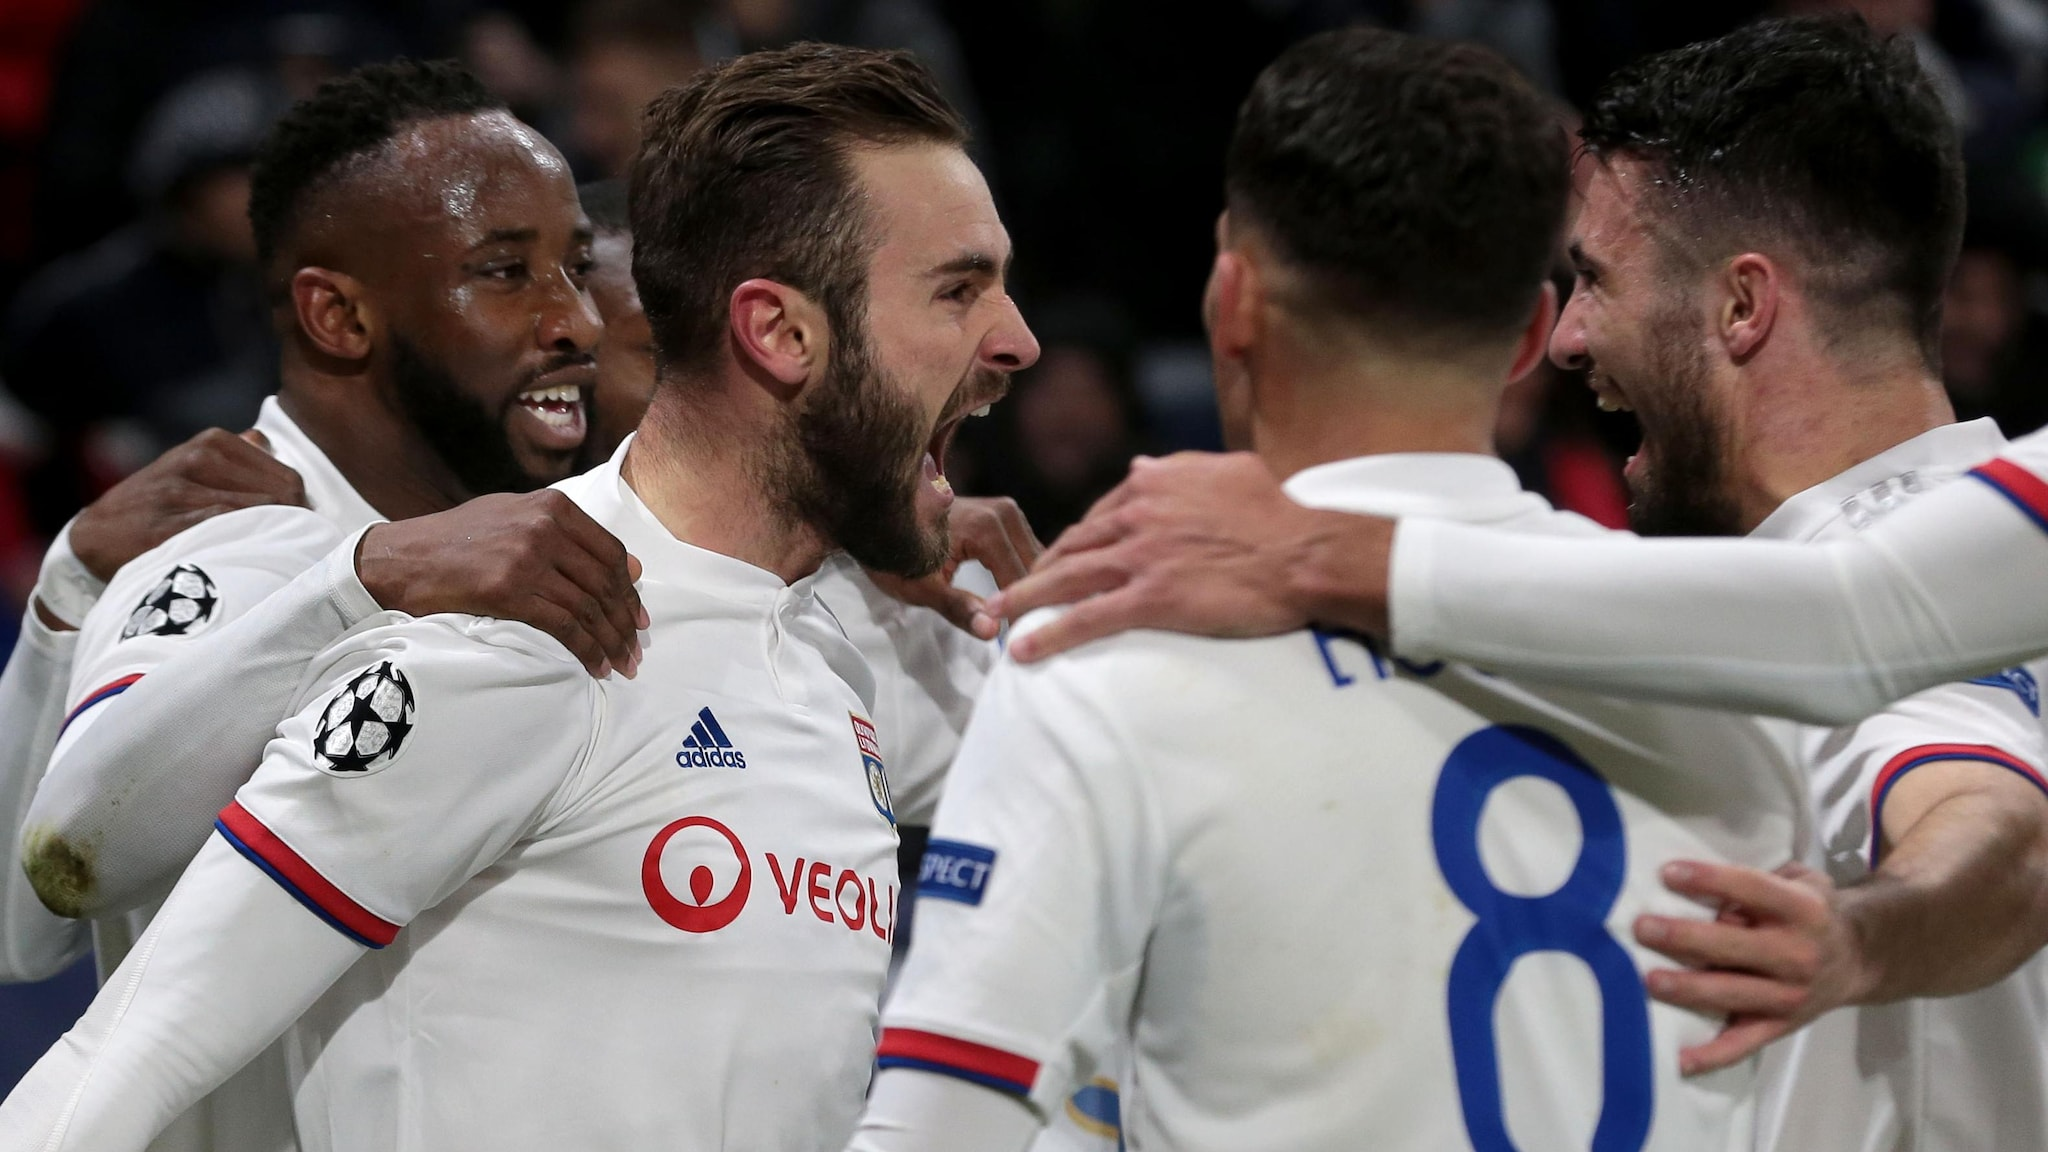 lyon 1 0 juventus tousart edges hosts ahead uefa champions league uefa com lyon 1 0 juventus tousart edges hosts